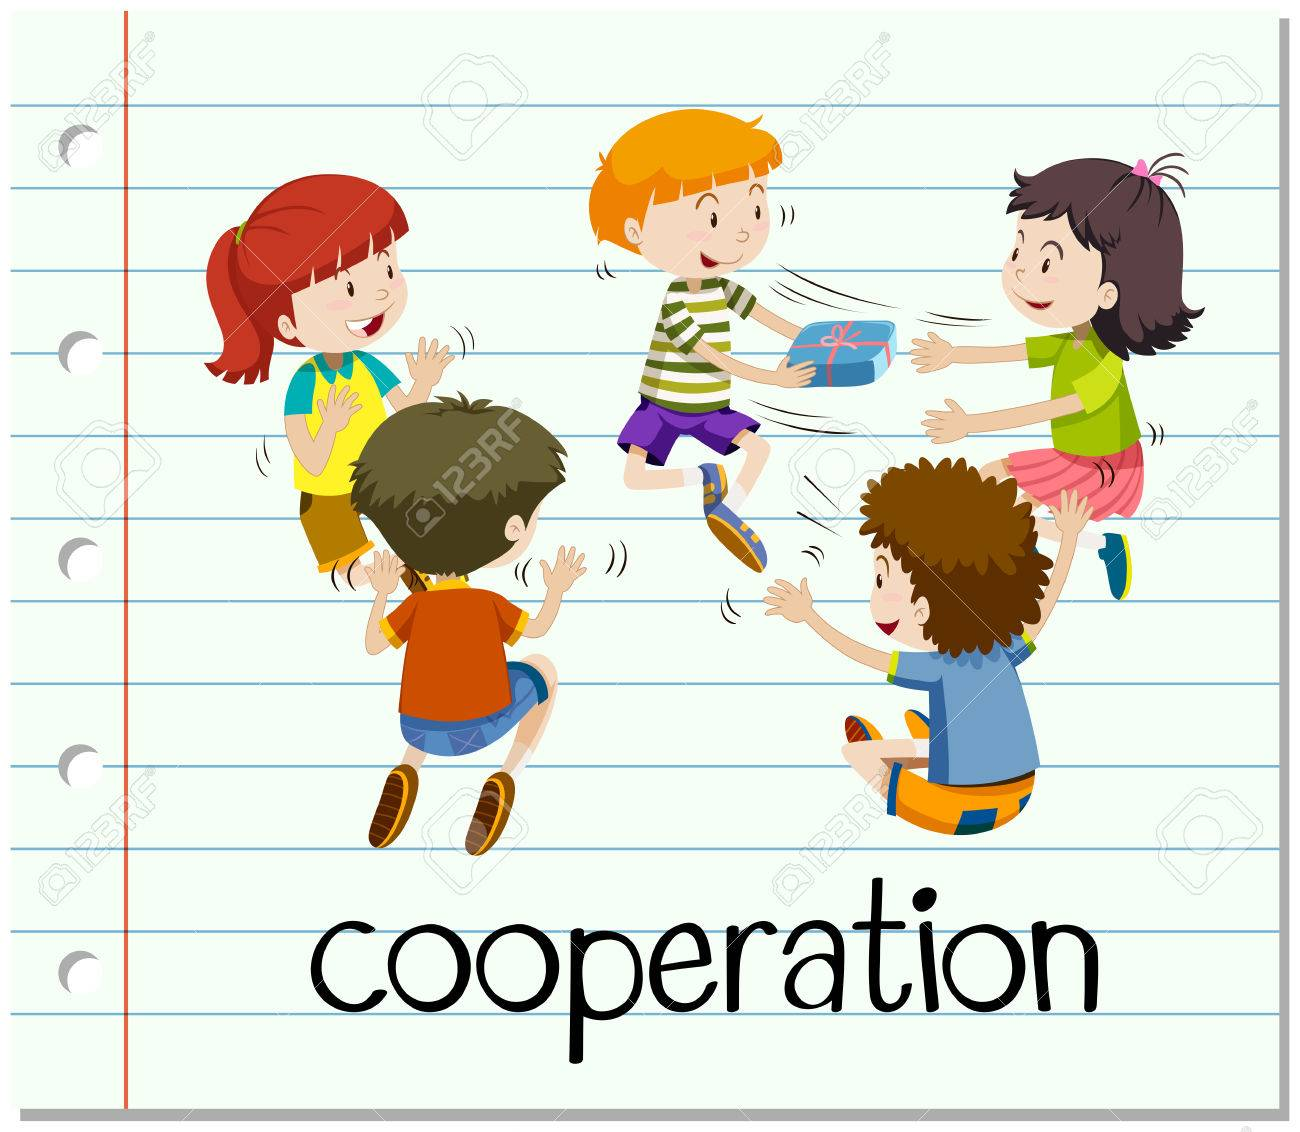 Word card with cooperation illustration.